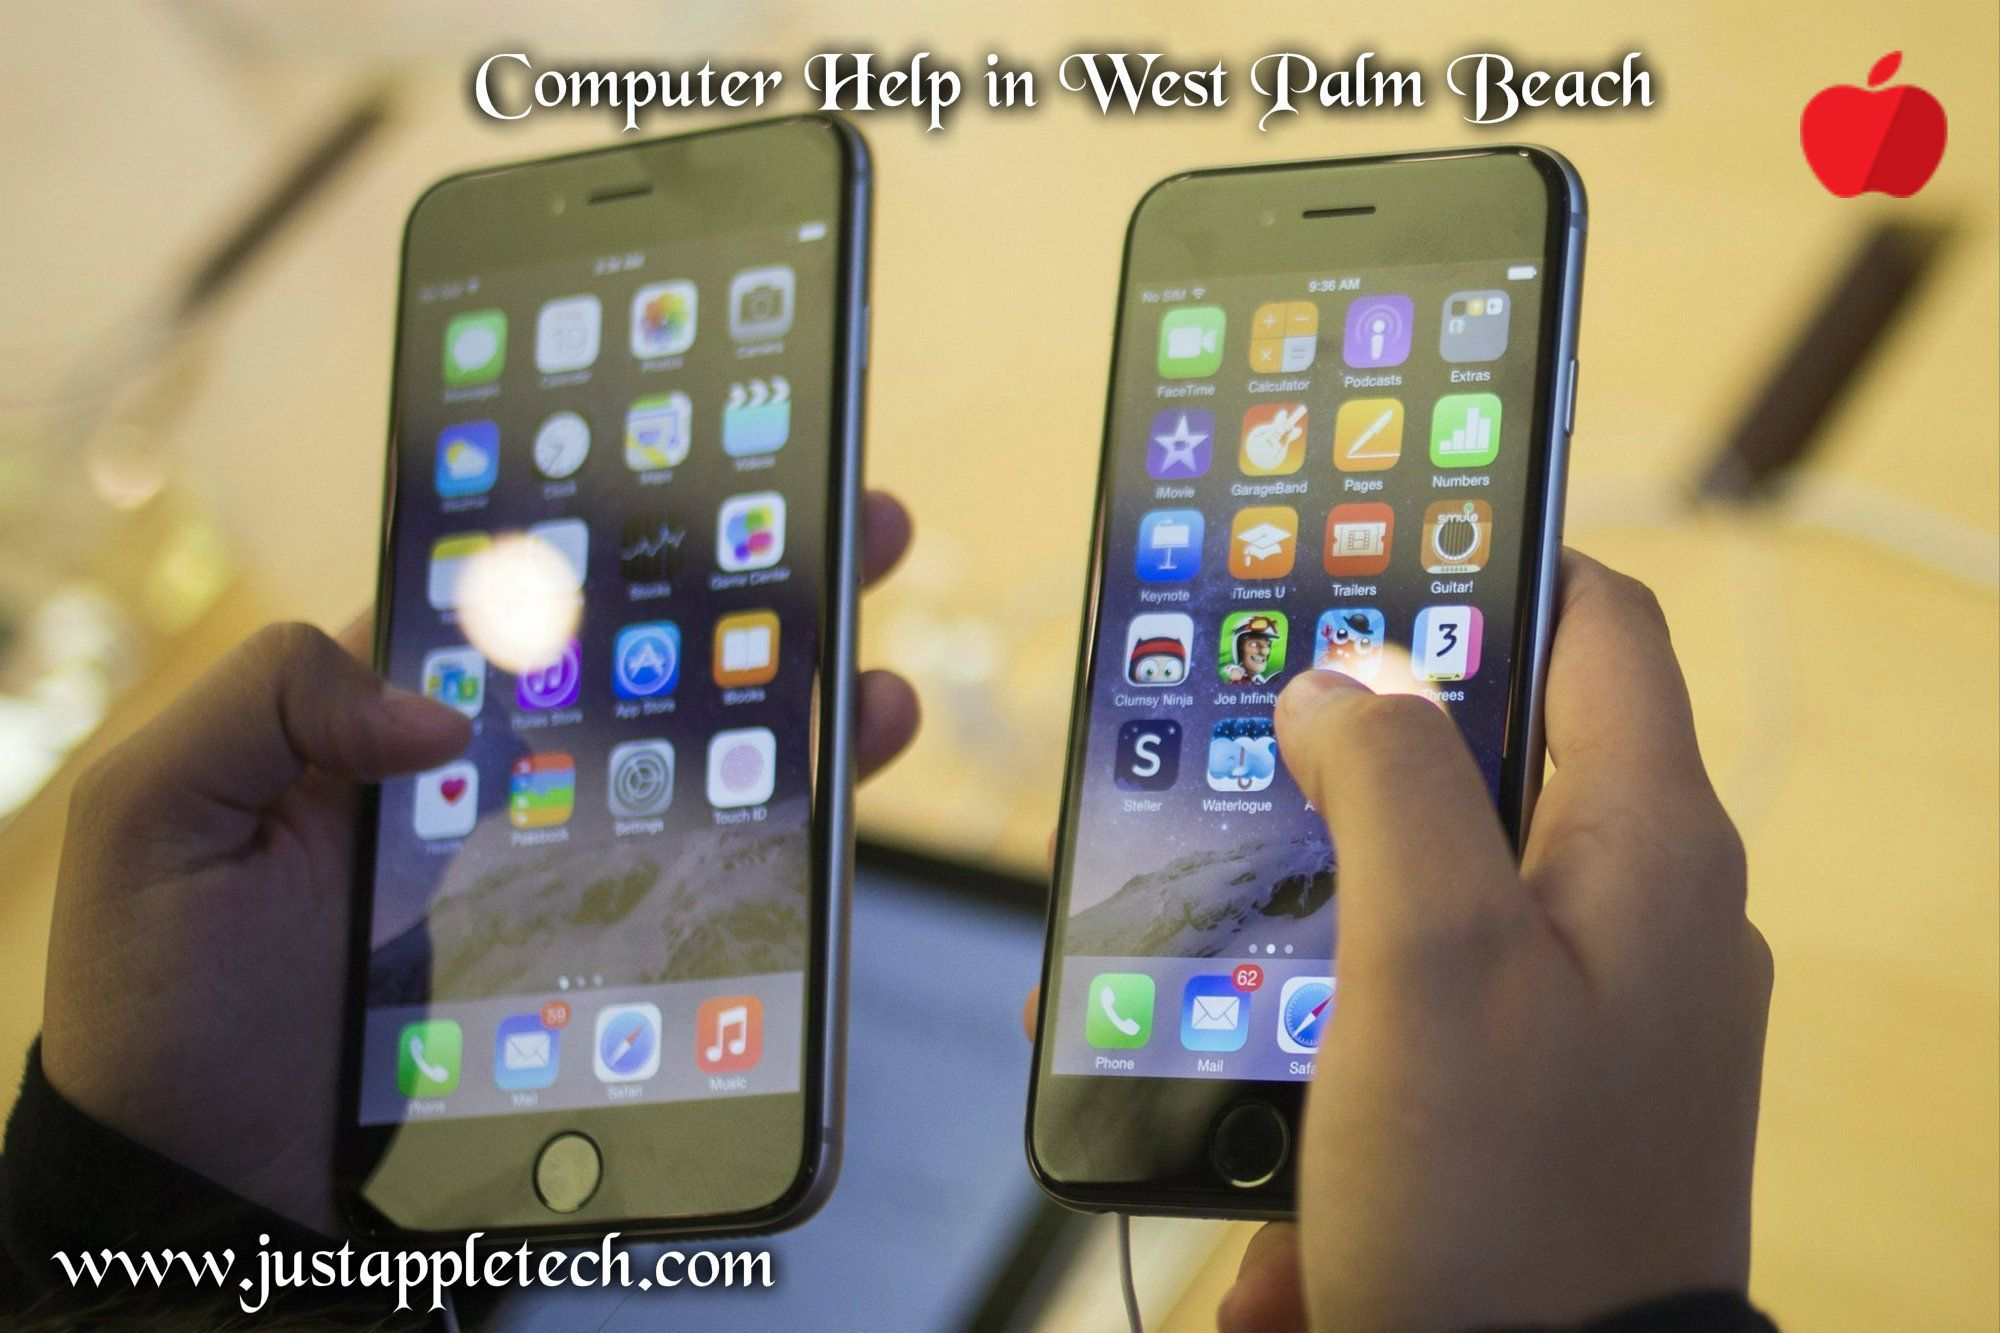 http://www.justappletech.com/ - Find the best Hard Drive Recovery Service in West Palm Beach.